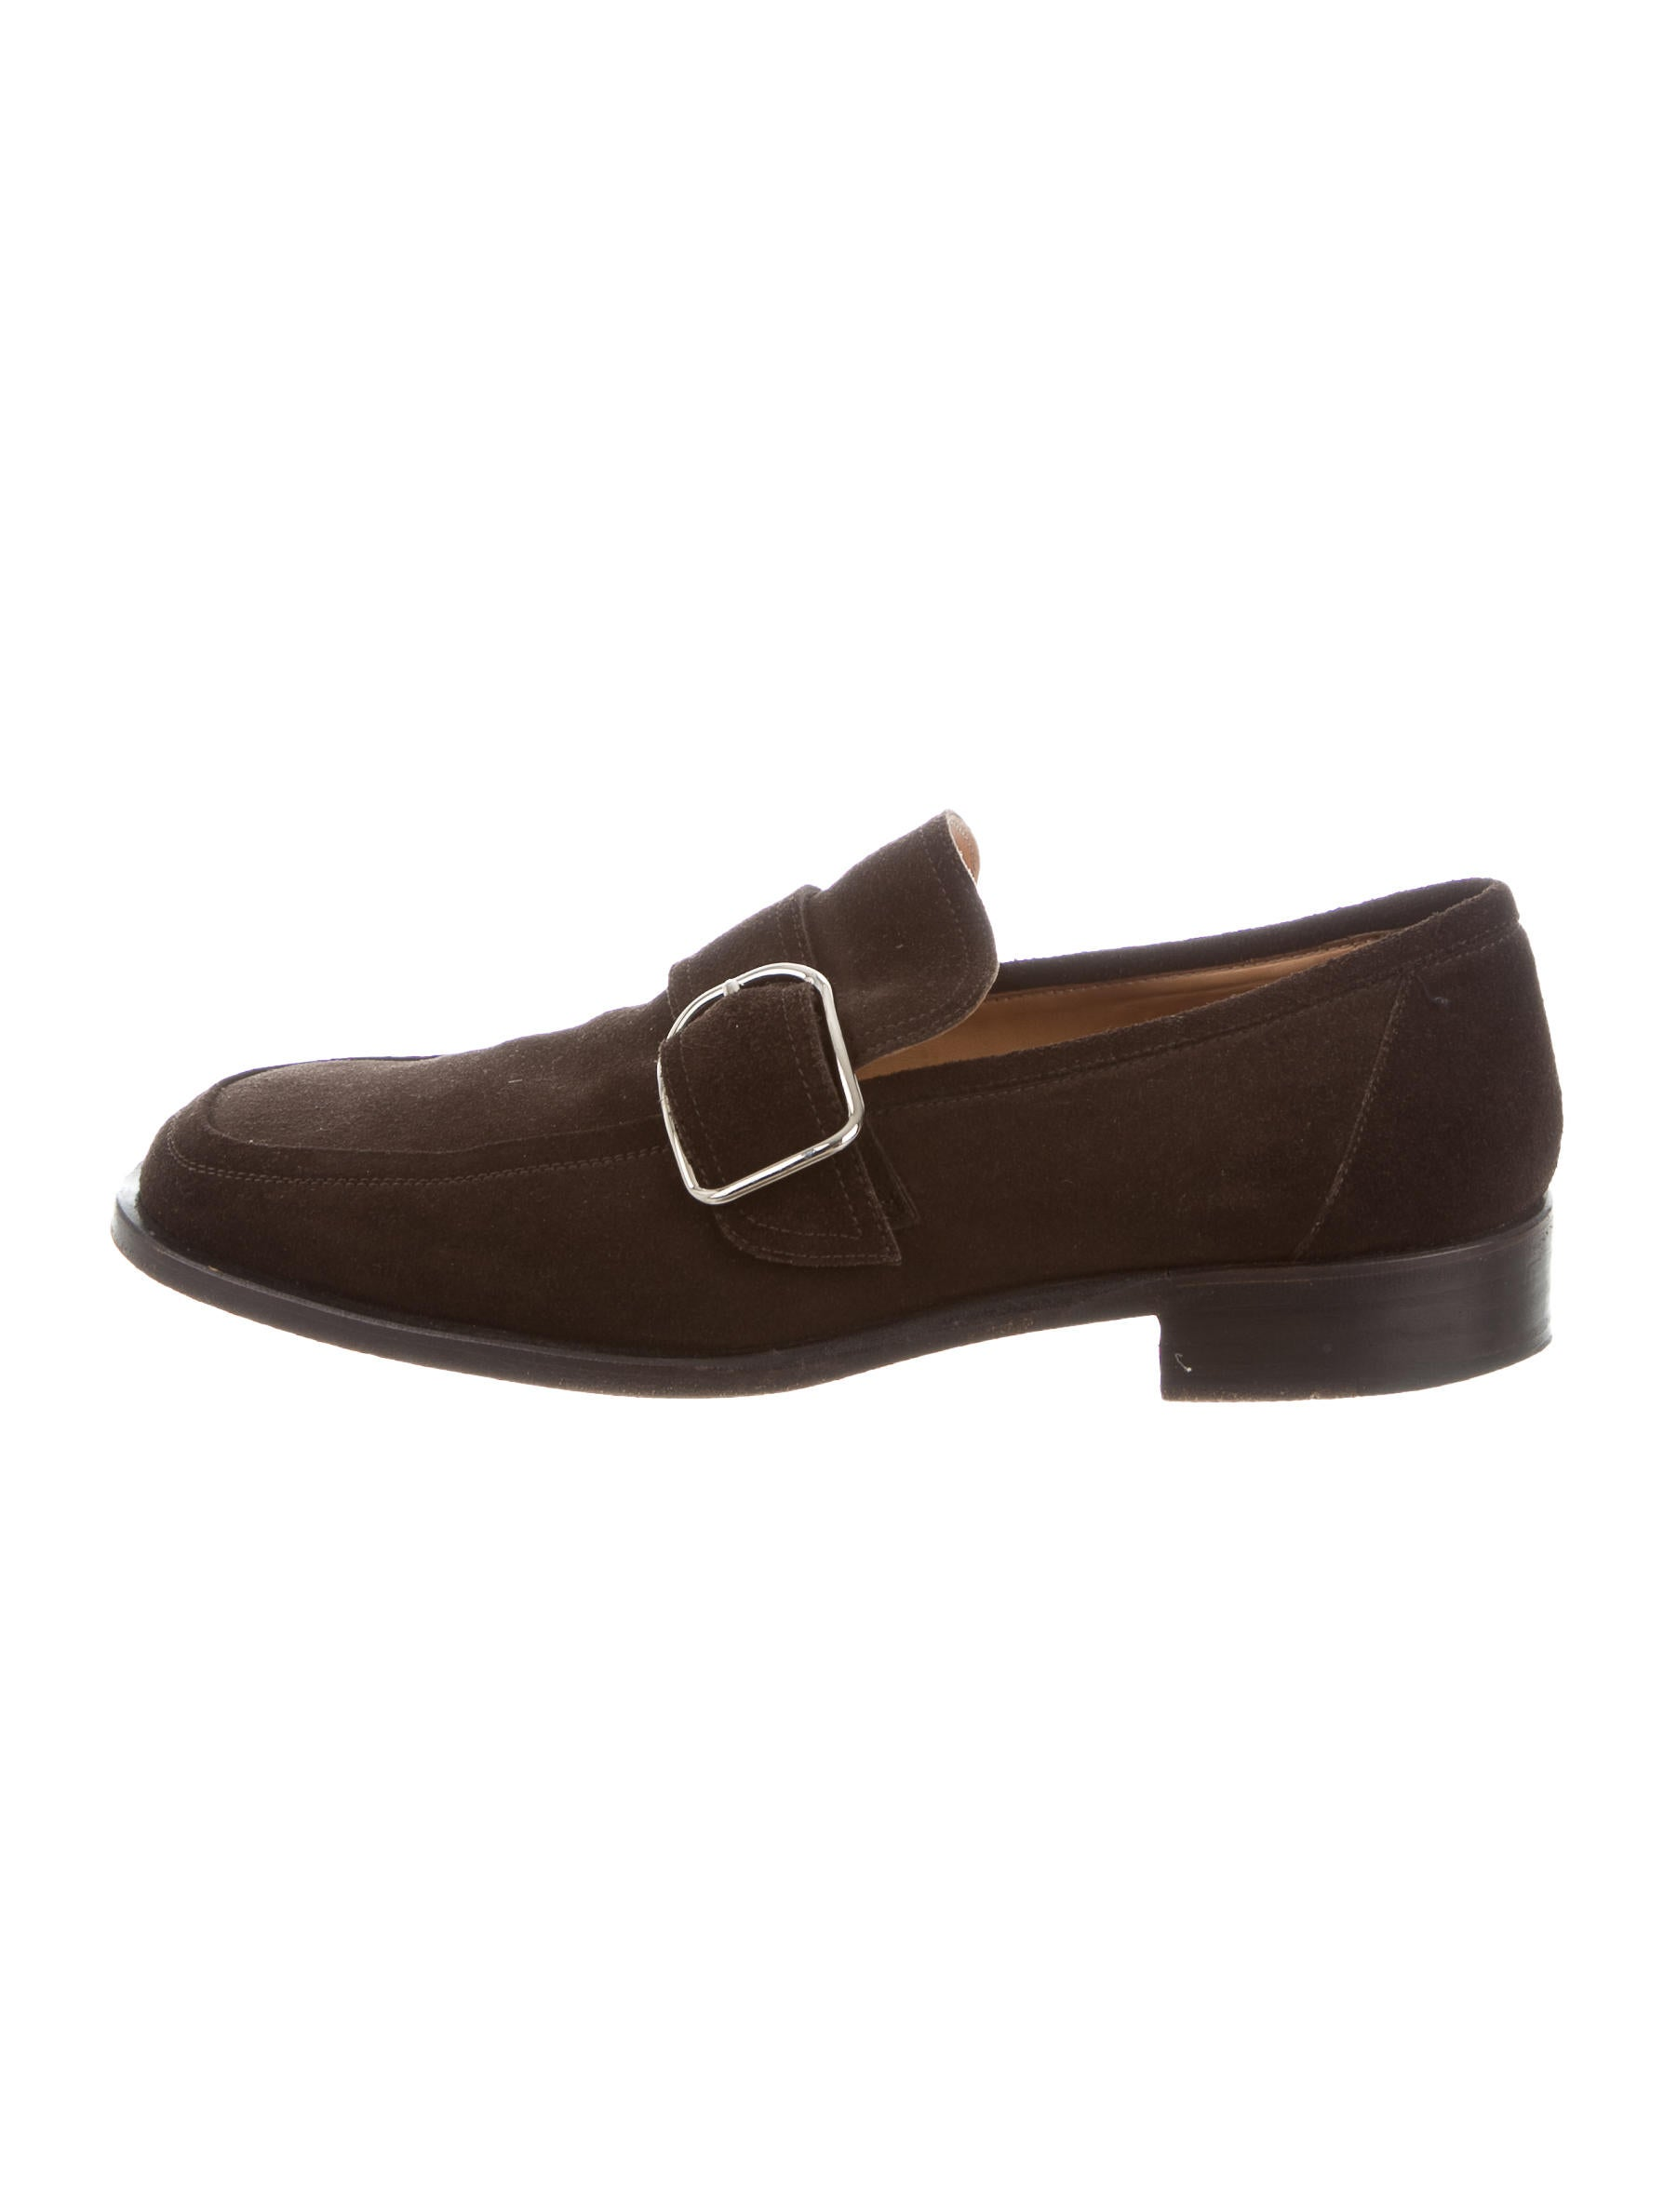 Hermu00e8s Suede Buckle Loafers - Shoes - HER100022 | The RealReal